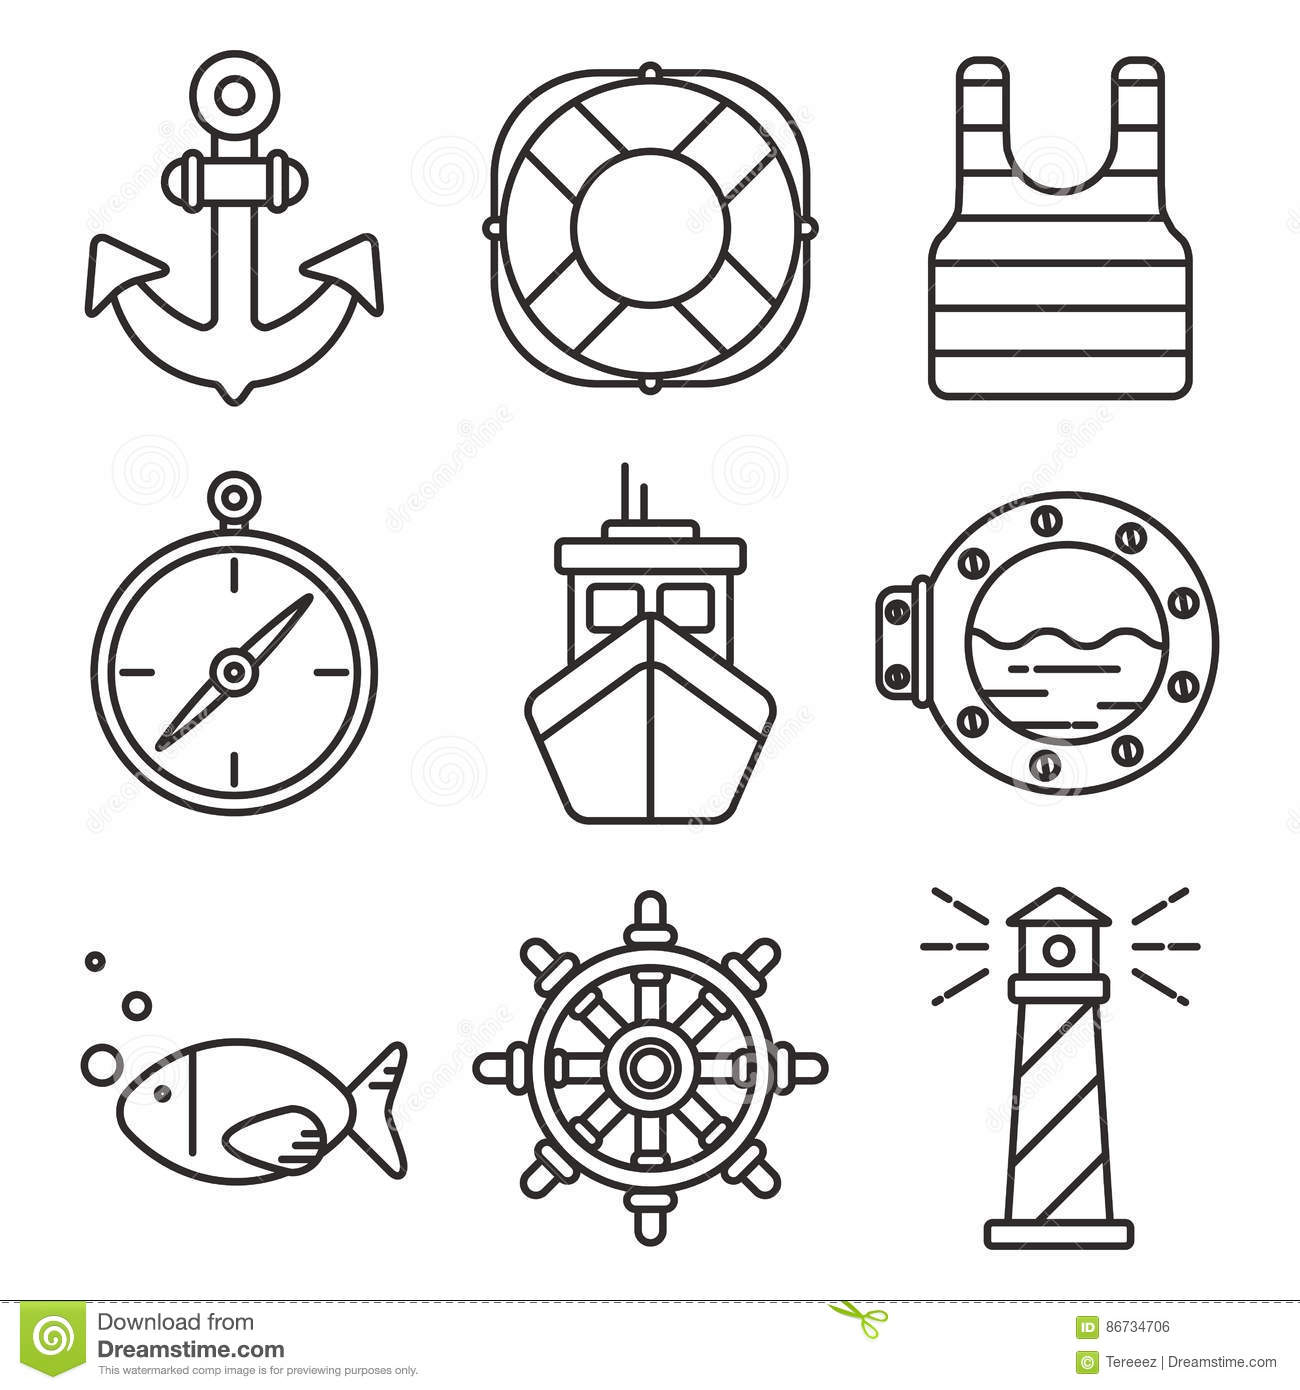 94371f20a Nautical Or Sea Trip Black Outline Icons Isolated Stock Vector ...